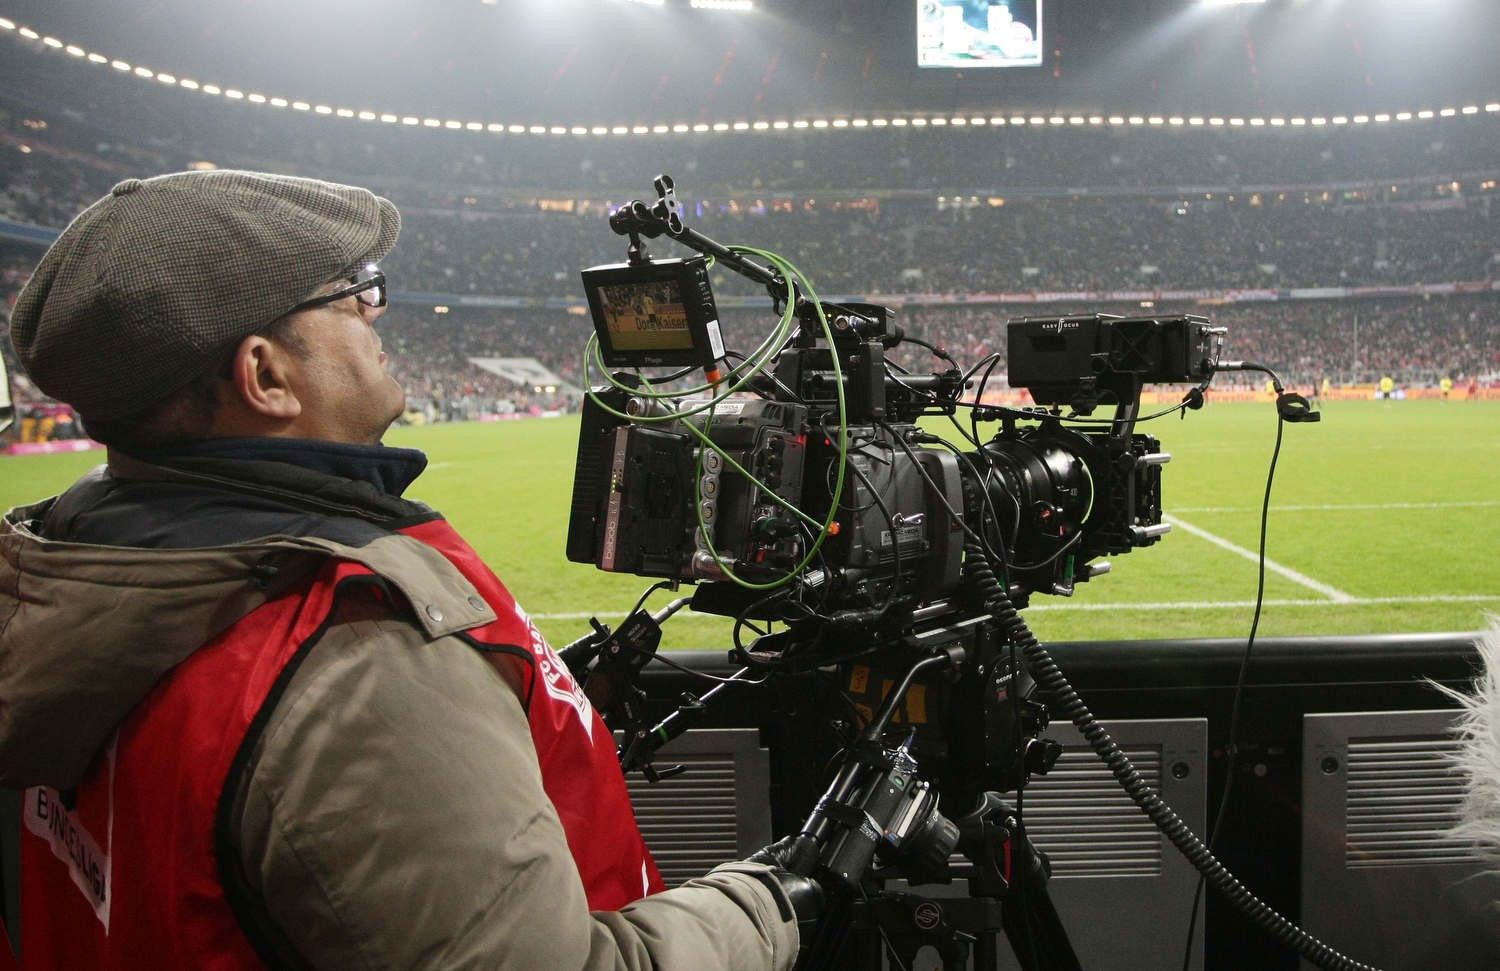 TV Hier rollt der Ball morgen in UHD - Finale der Champions-League superscharf  - News, Bild 1